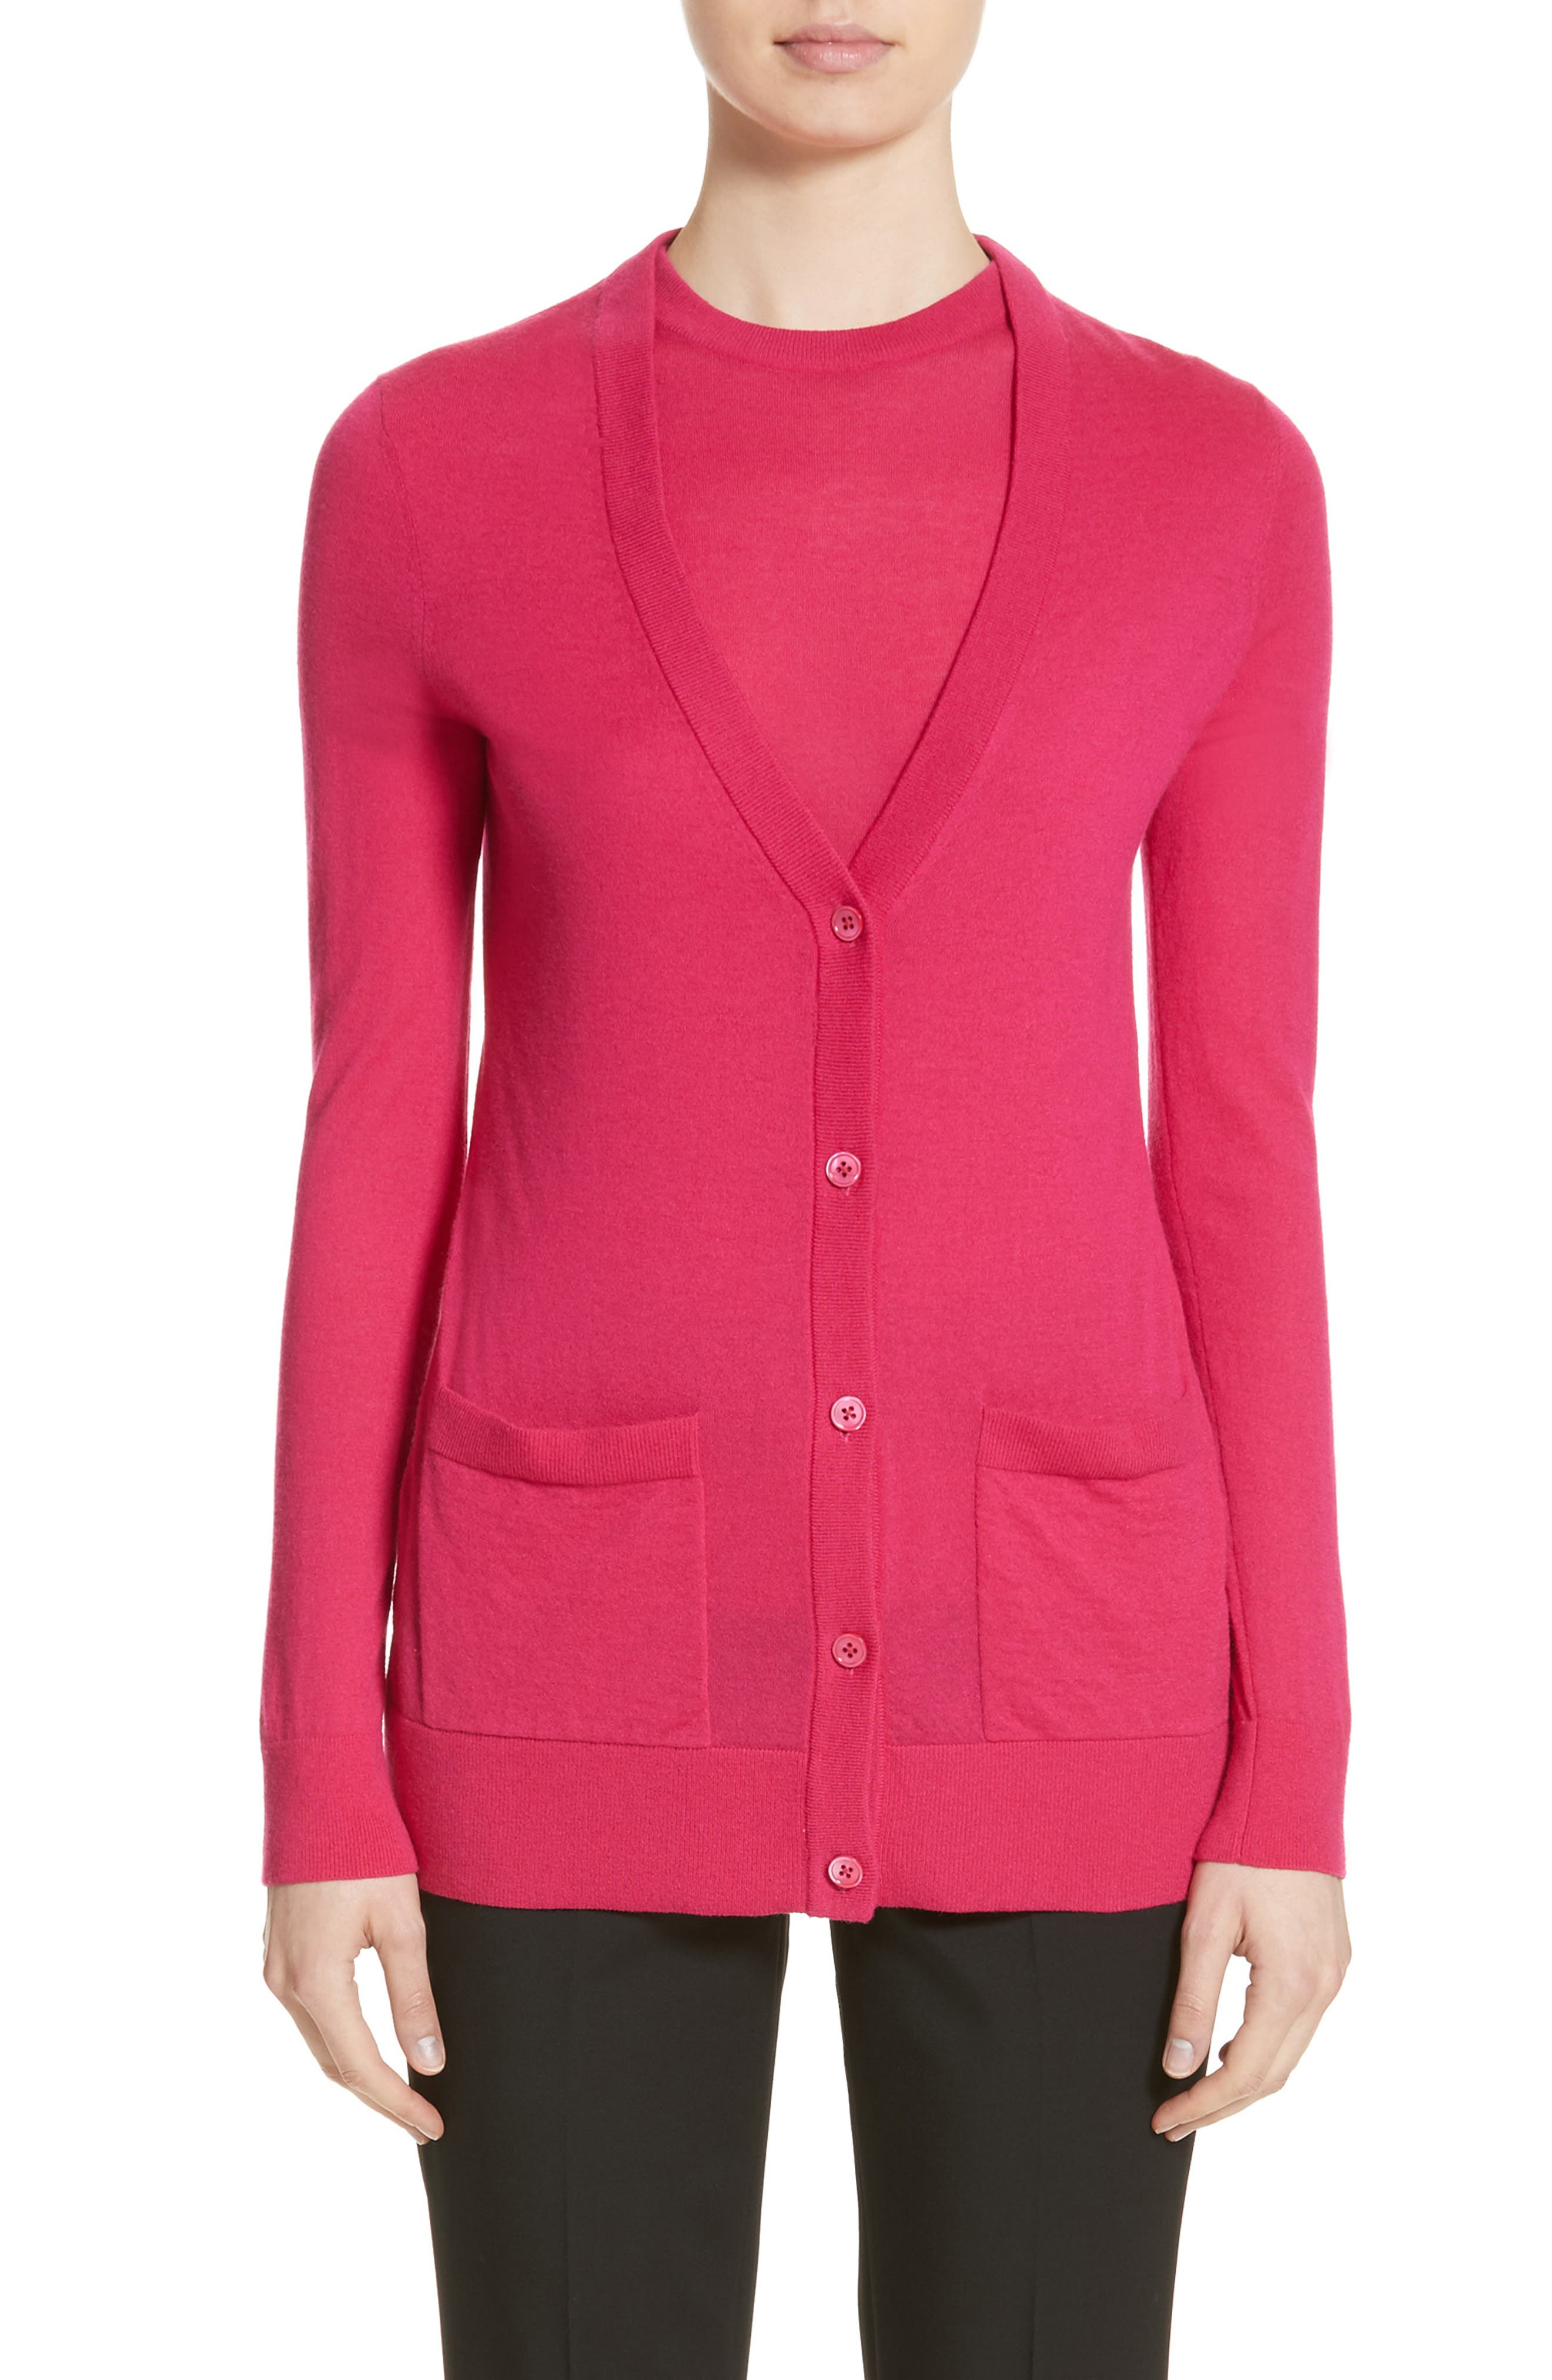 Alternate Image 1 Selected - Michael Kors Featherweight Cashmere Cardigan